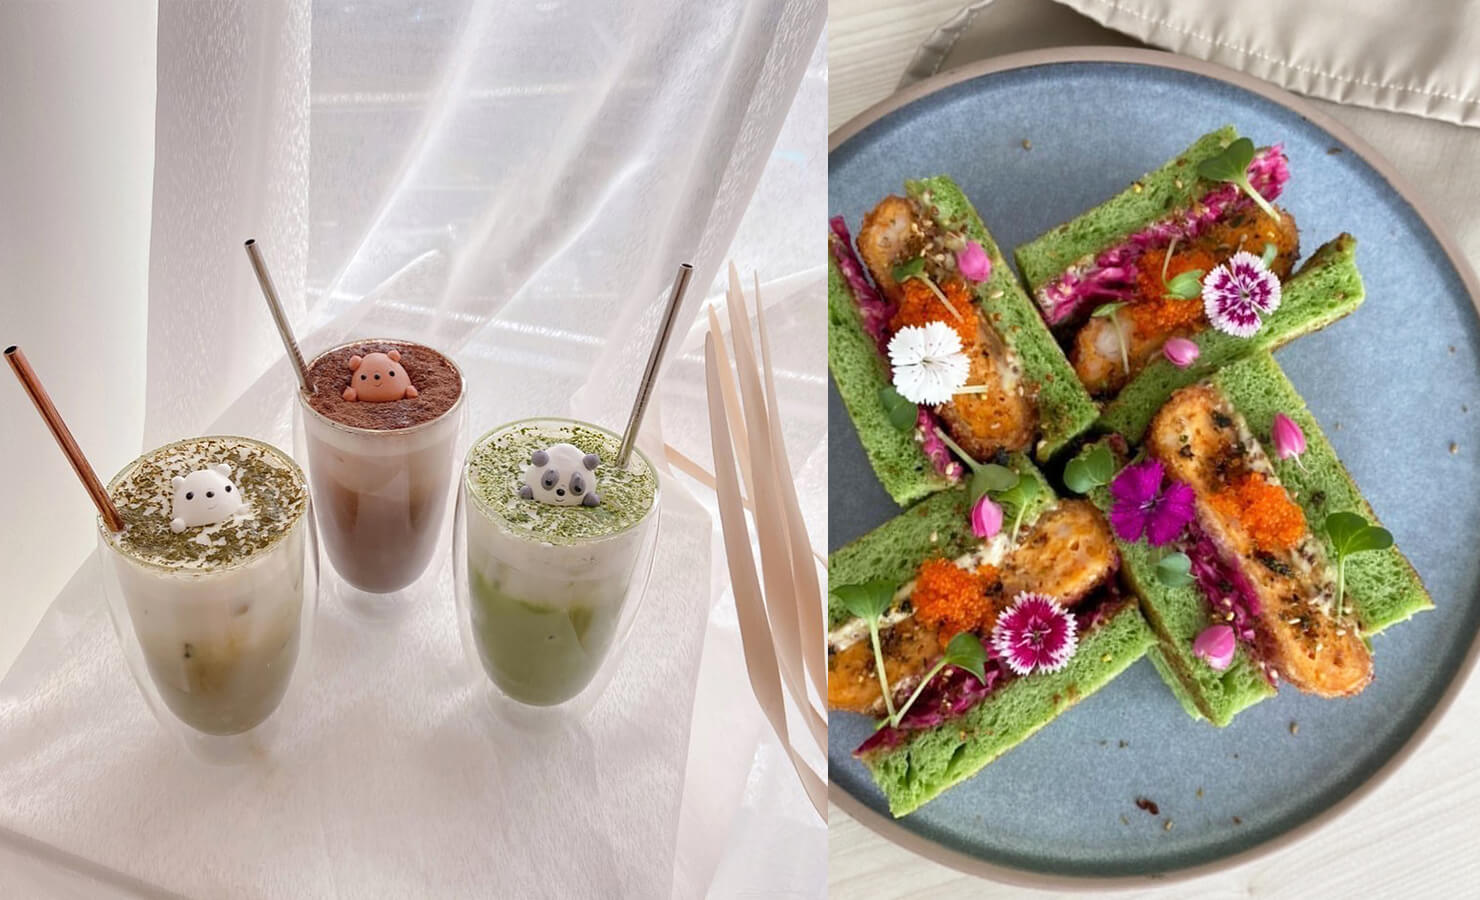 bloomthis-5-plant-flower-cafes-you-have-to-visit-12-latte-edible-flower-food